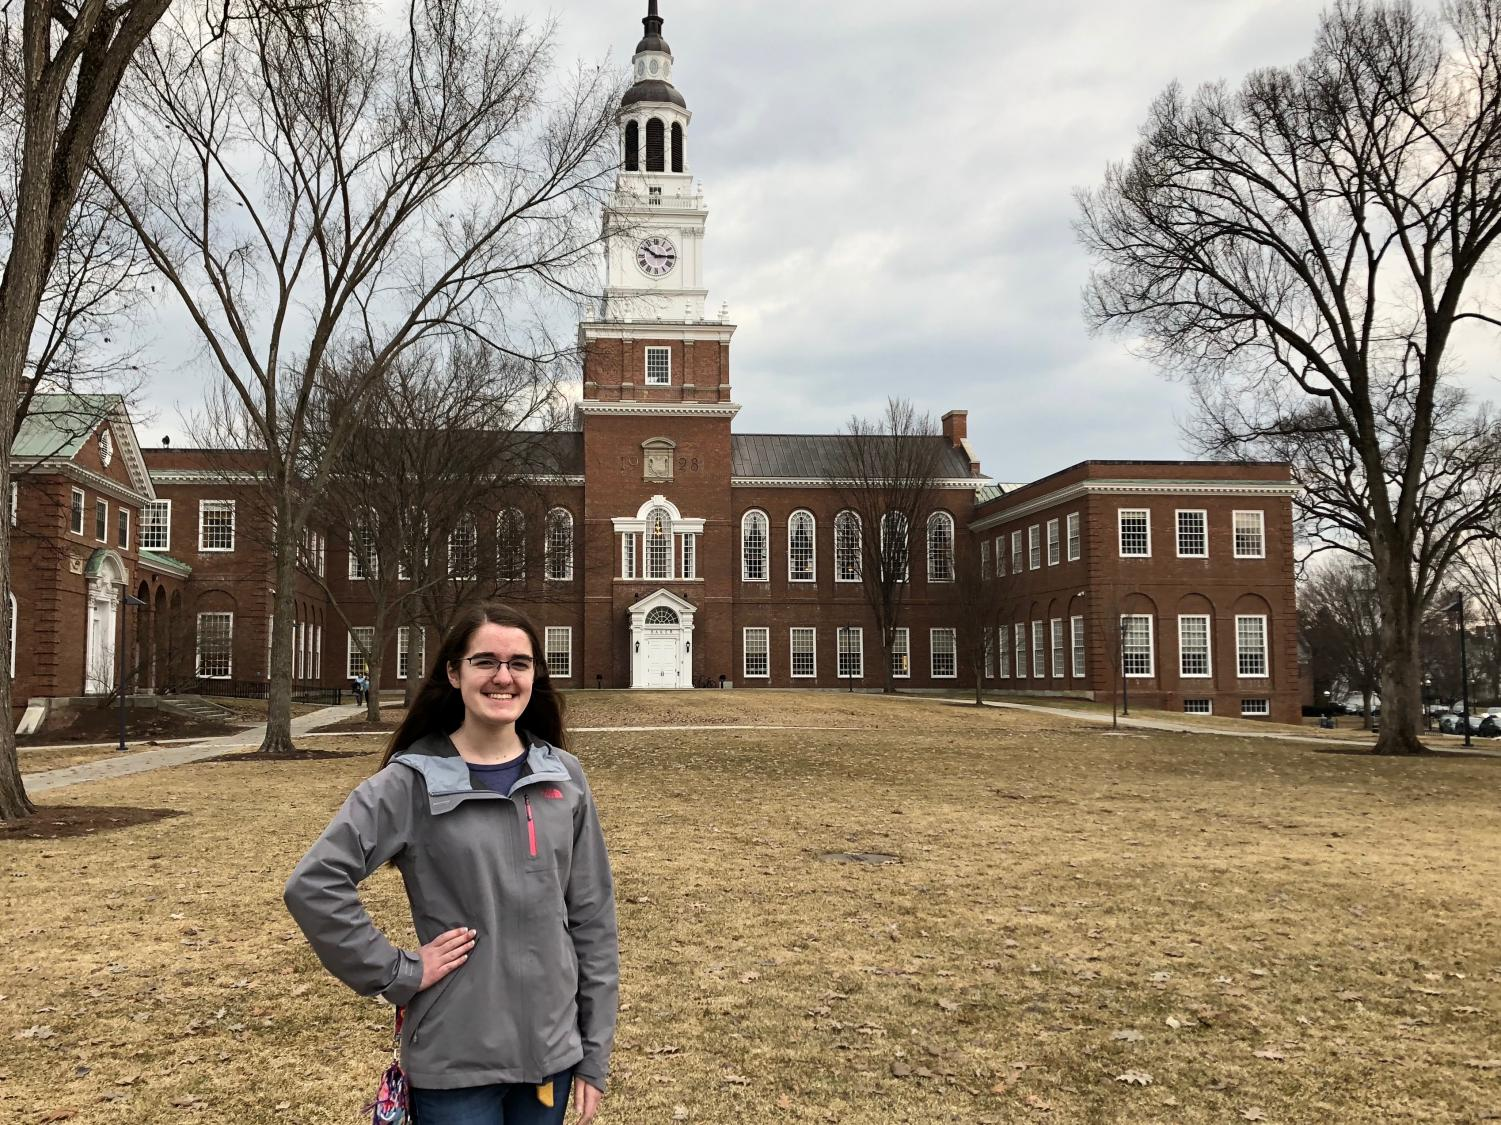 Abington High School's Valedictorian Allison MacLeod will be attending Dartmouth College in the fall of 2019.